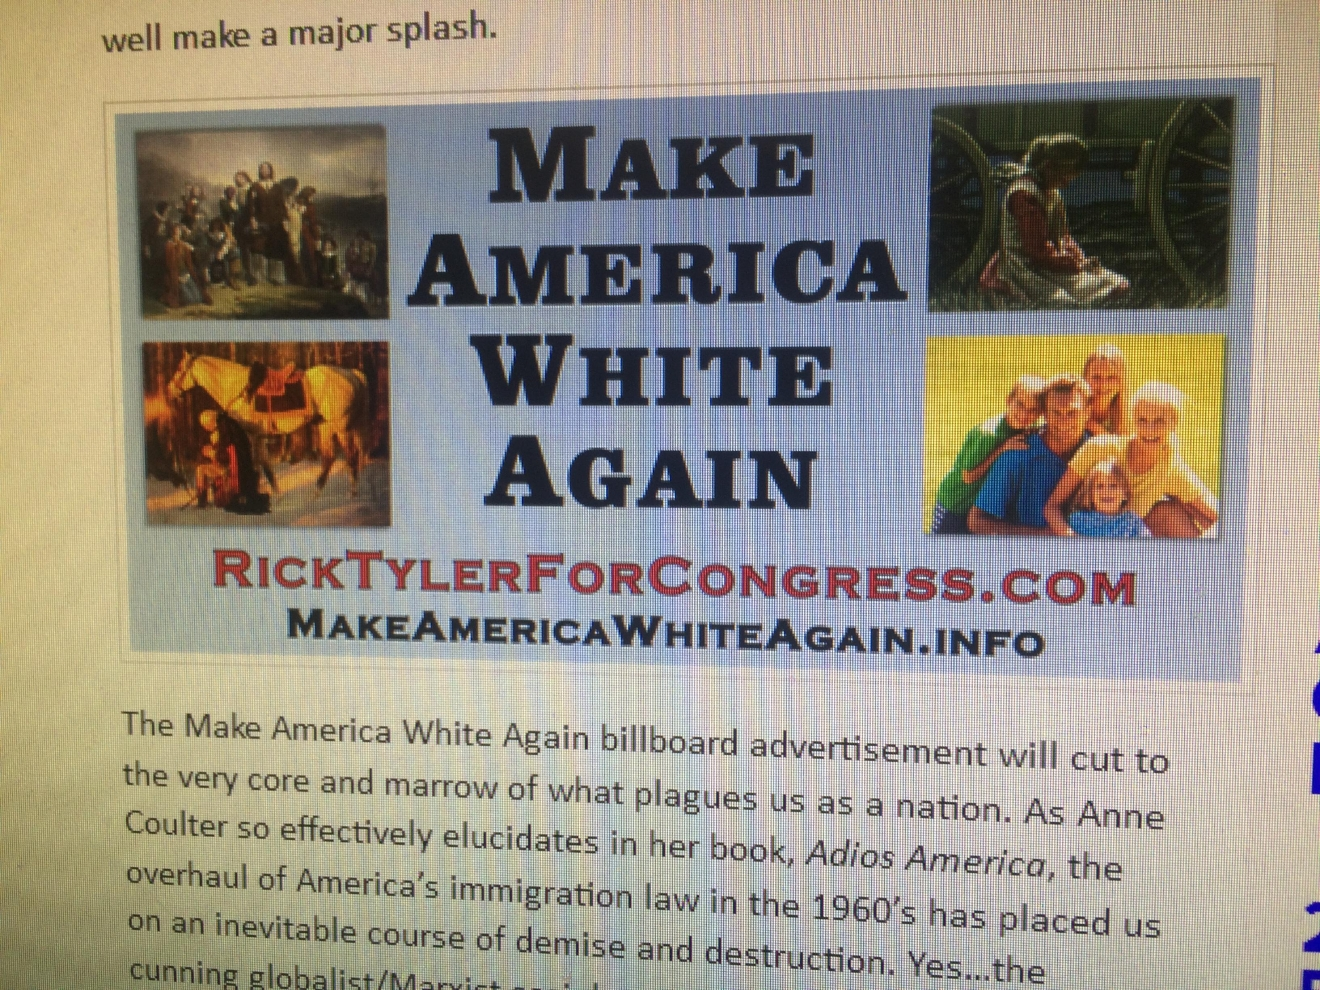 Tyler reportedly took the sign down, but the image of the billboard is still on his website, as of Wednesday, June 22, 2016. (Screen grab from RickTylerForCongress.com)